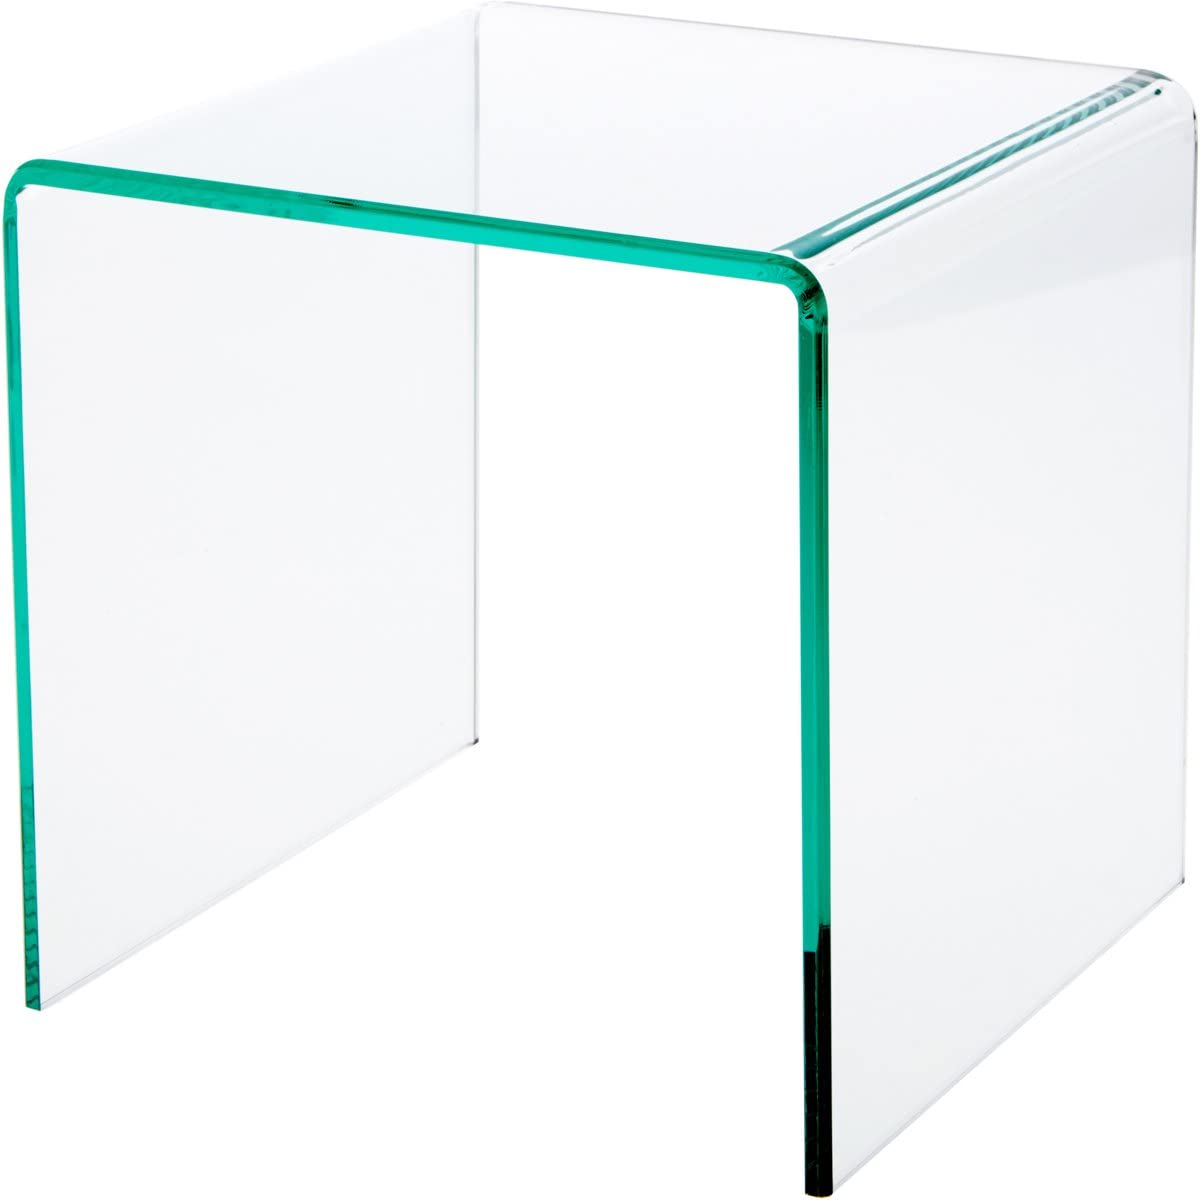 Plymor Clear Popular products Acrylic Green Glass-Look Edge In a popularity Riser Display Beveled